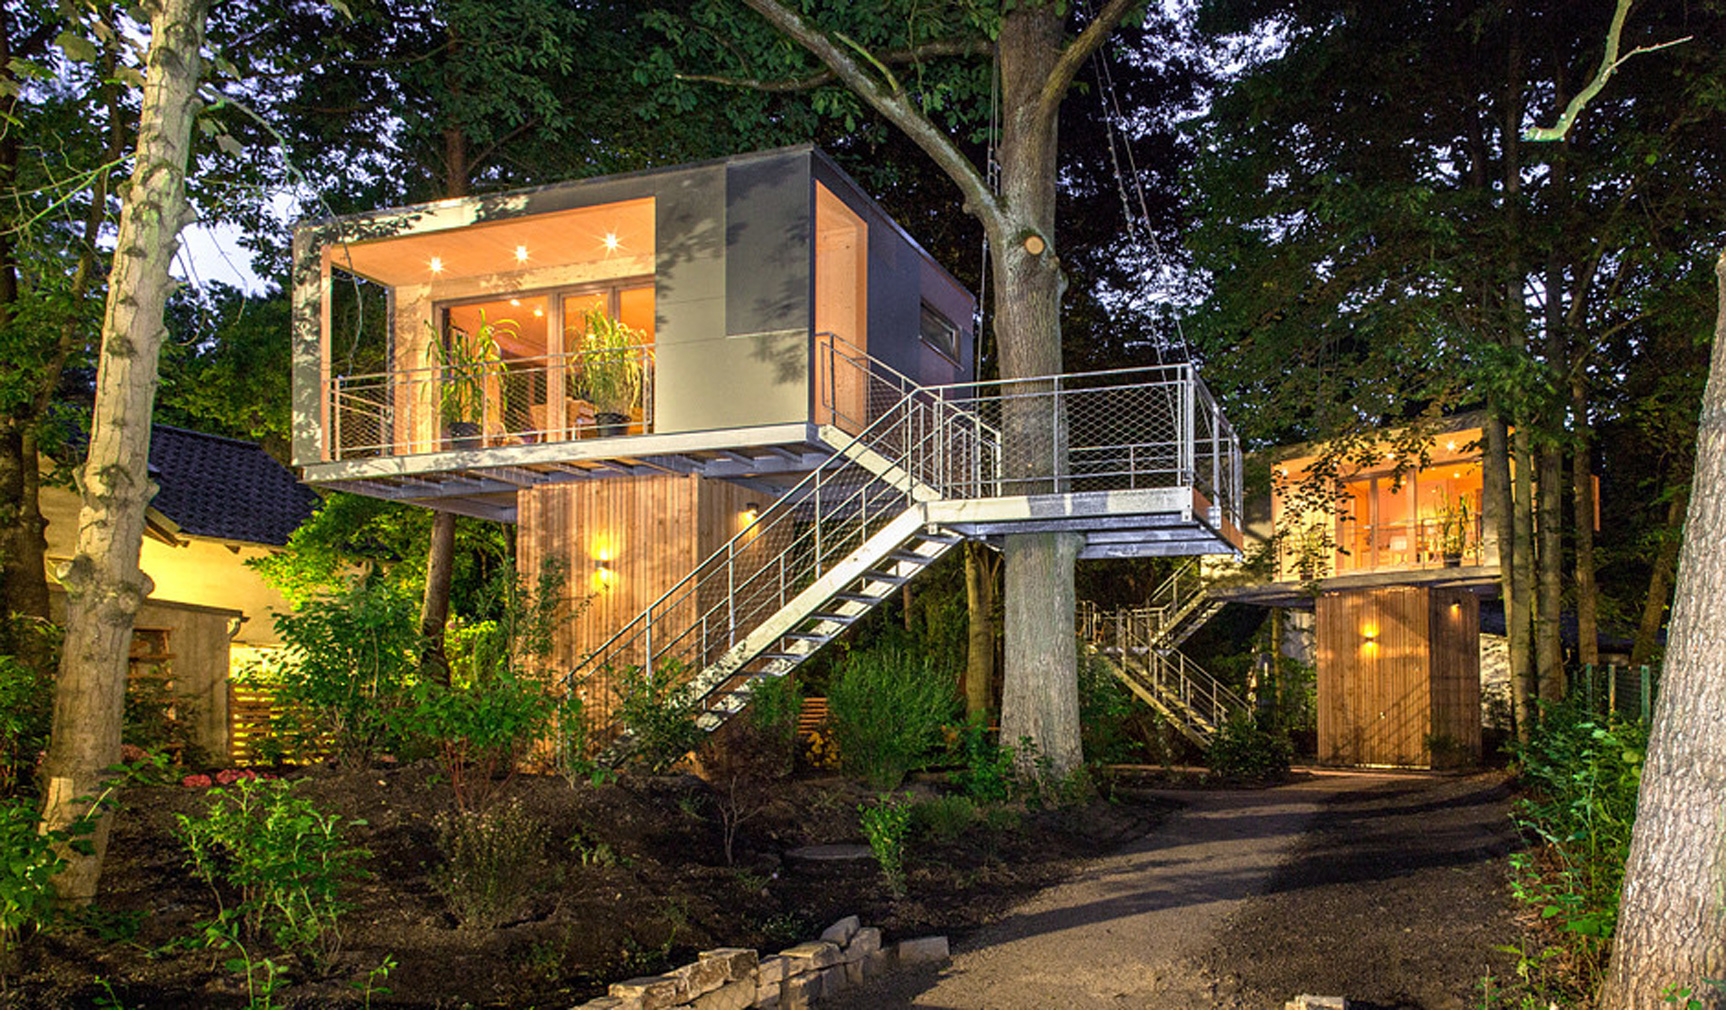 Urban Treehouse in Berlin